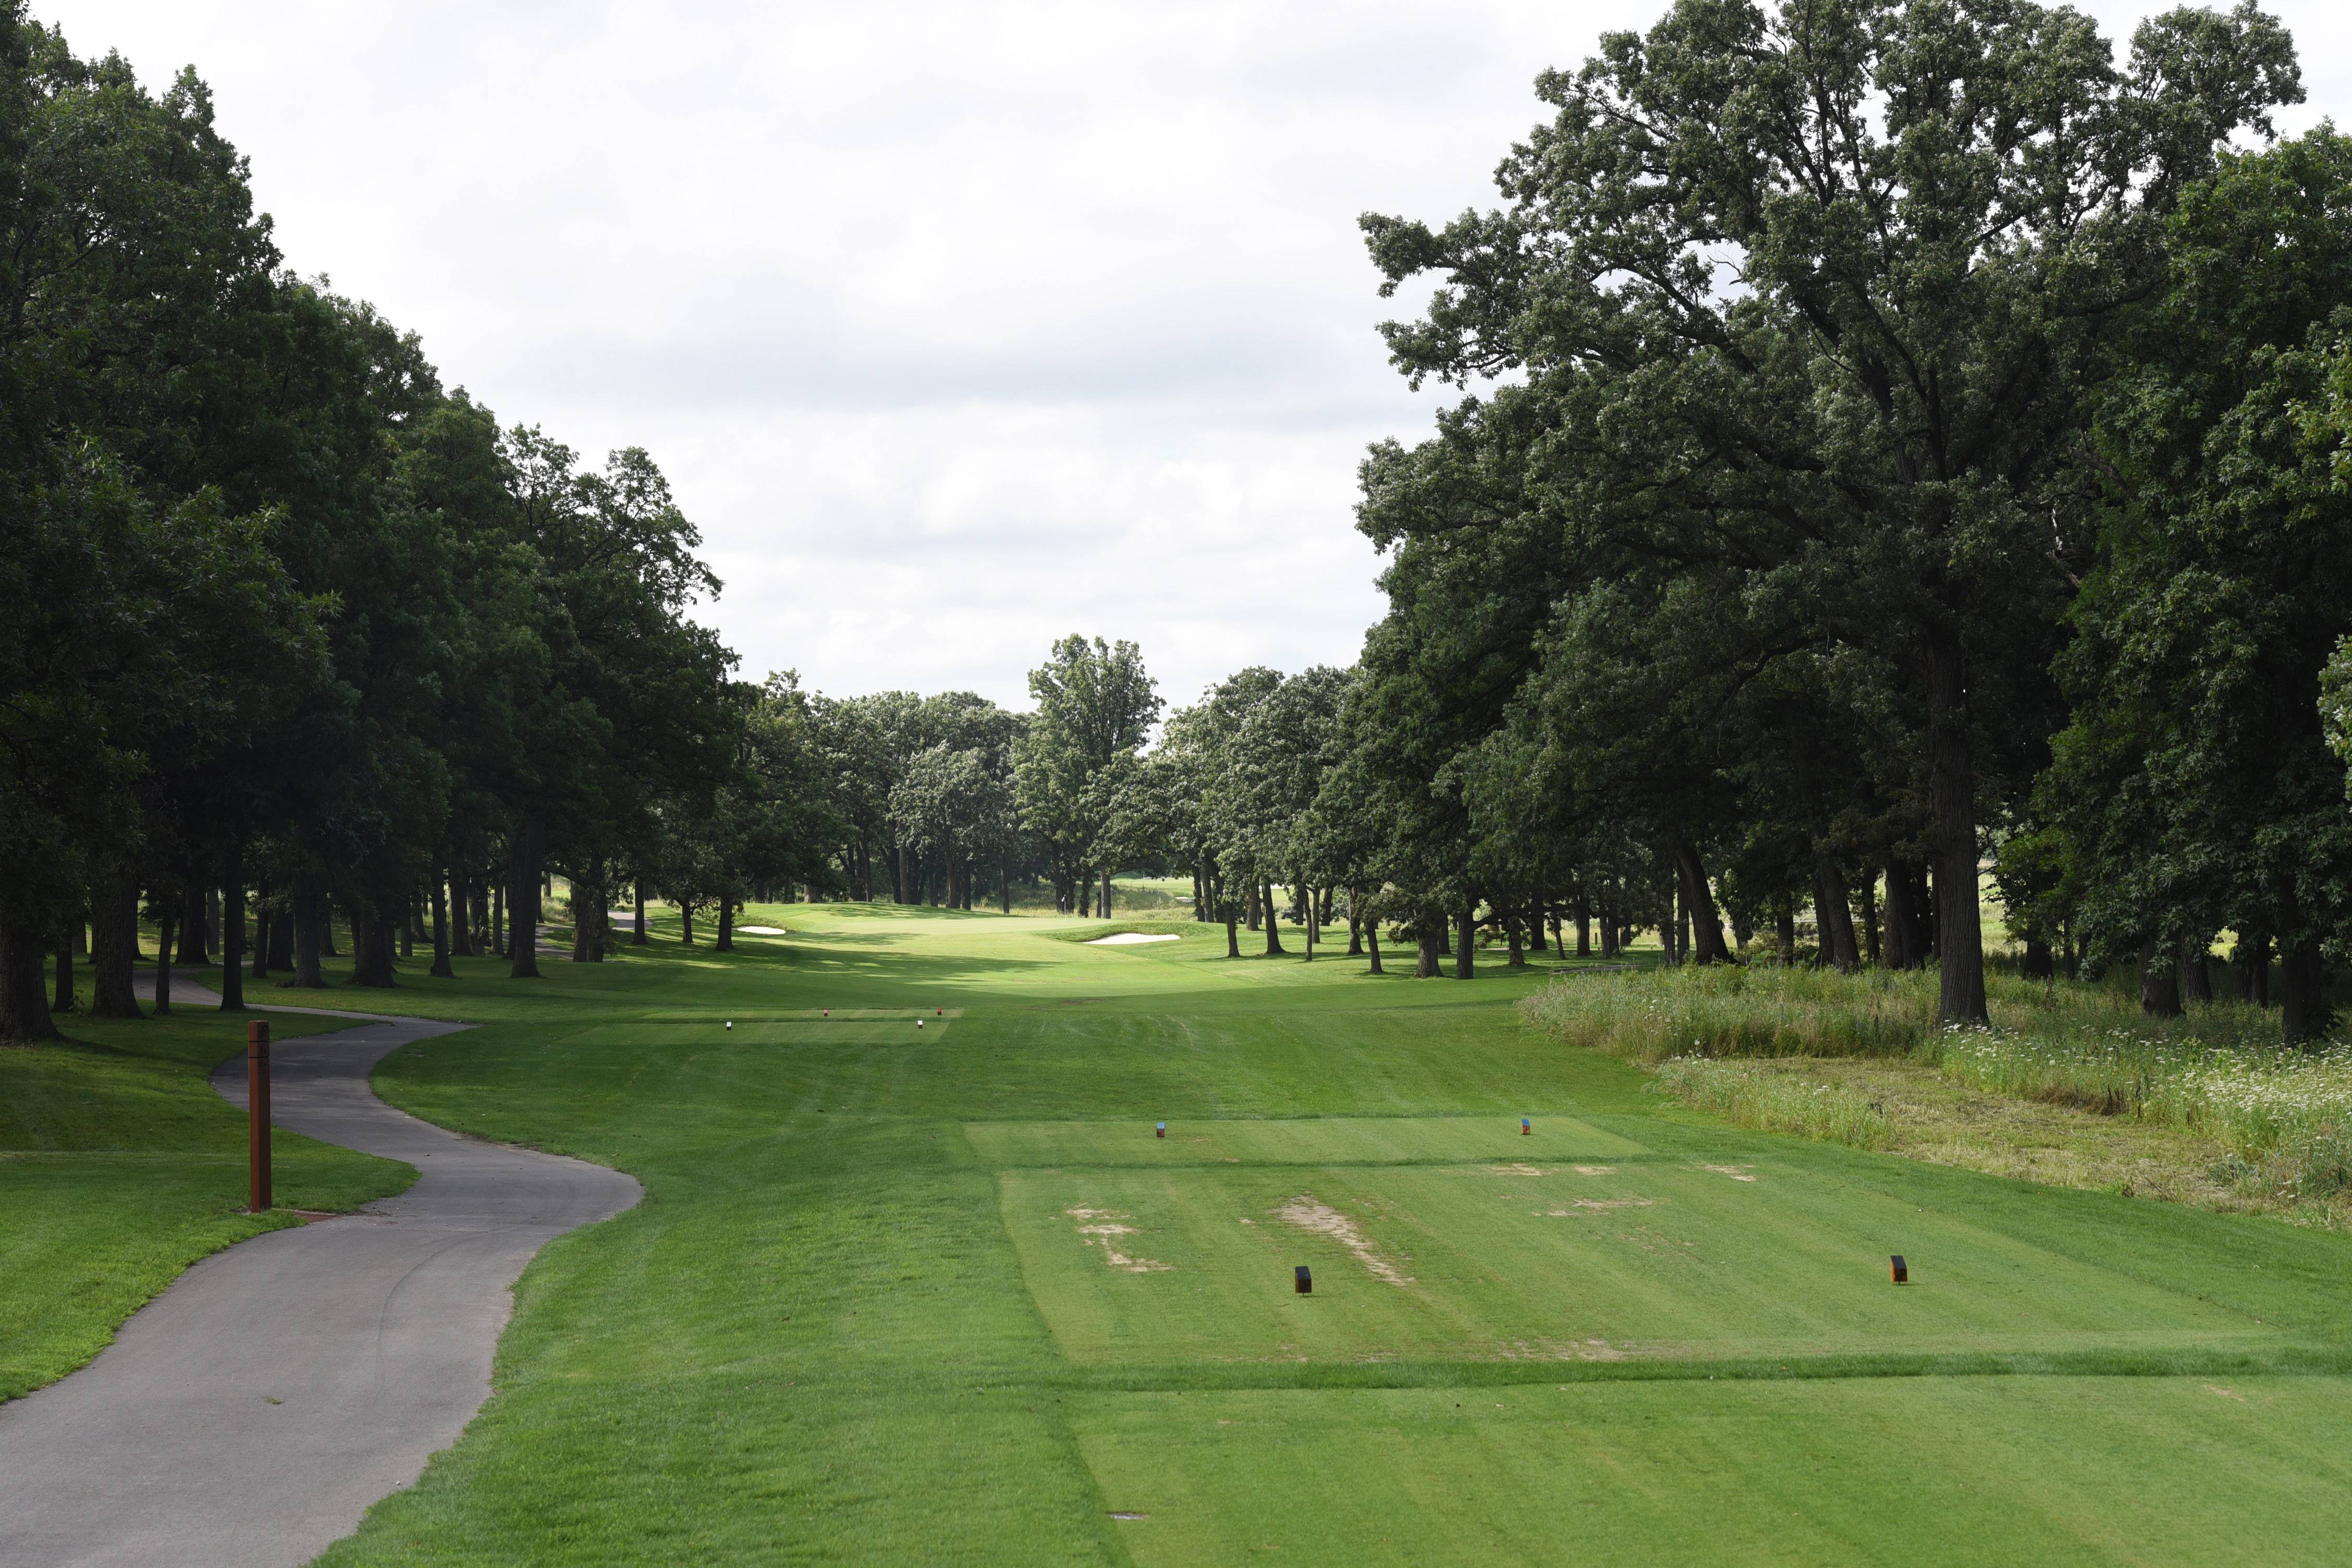 Oak Meadows golf course in Addison soon to be open to public